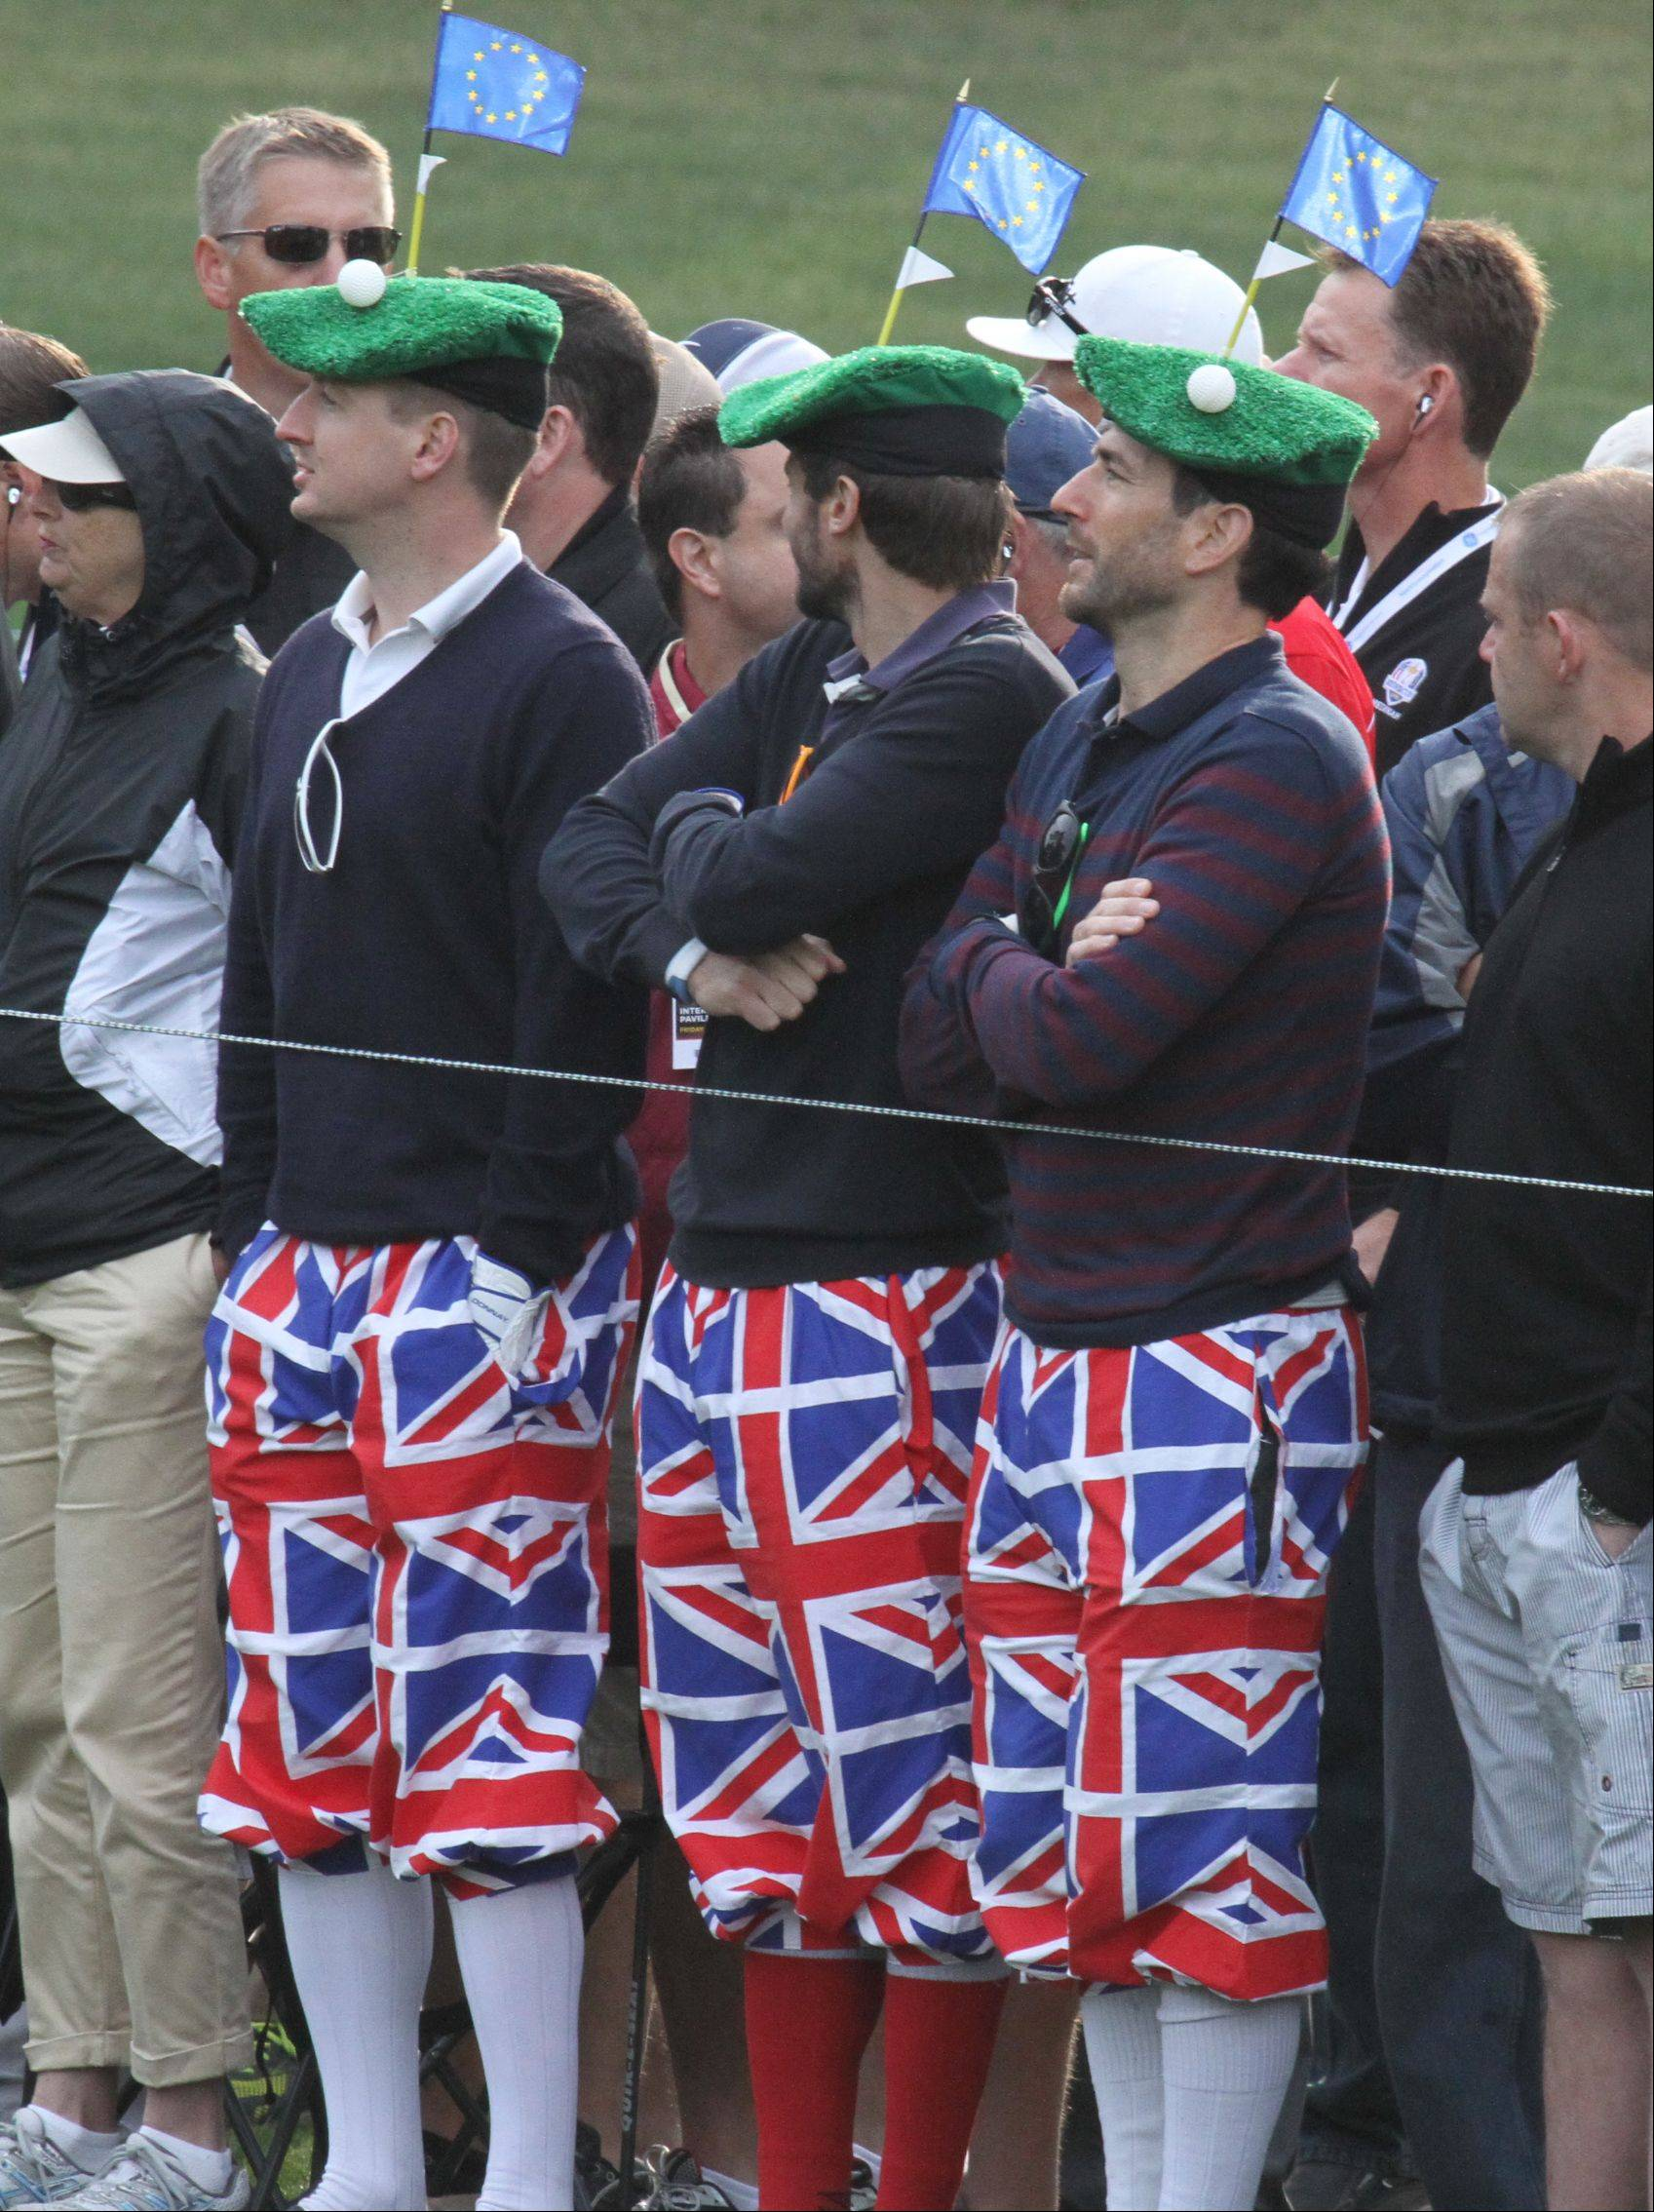 These fans were showing their team Europe pride as they were decked out in their British knickers Friday morning at the Ryder Cup at Medinah Country Club.